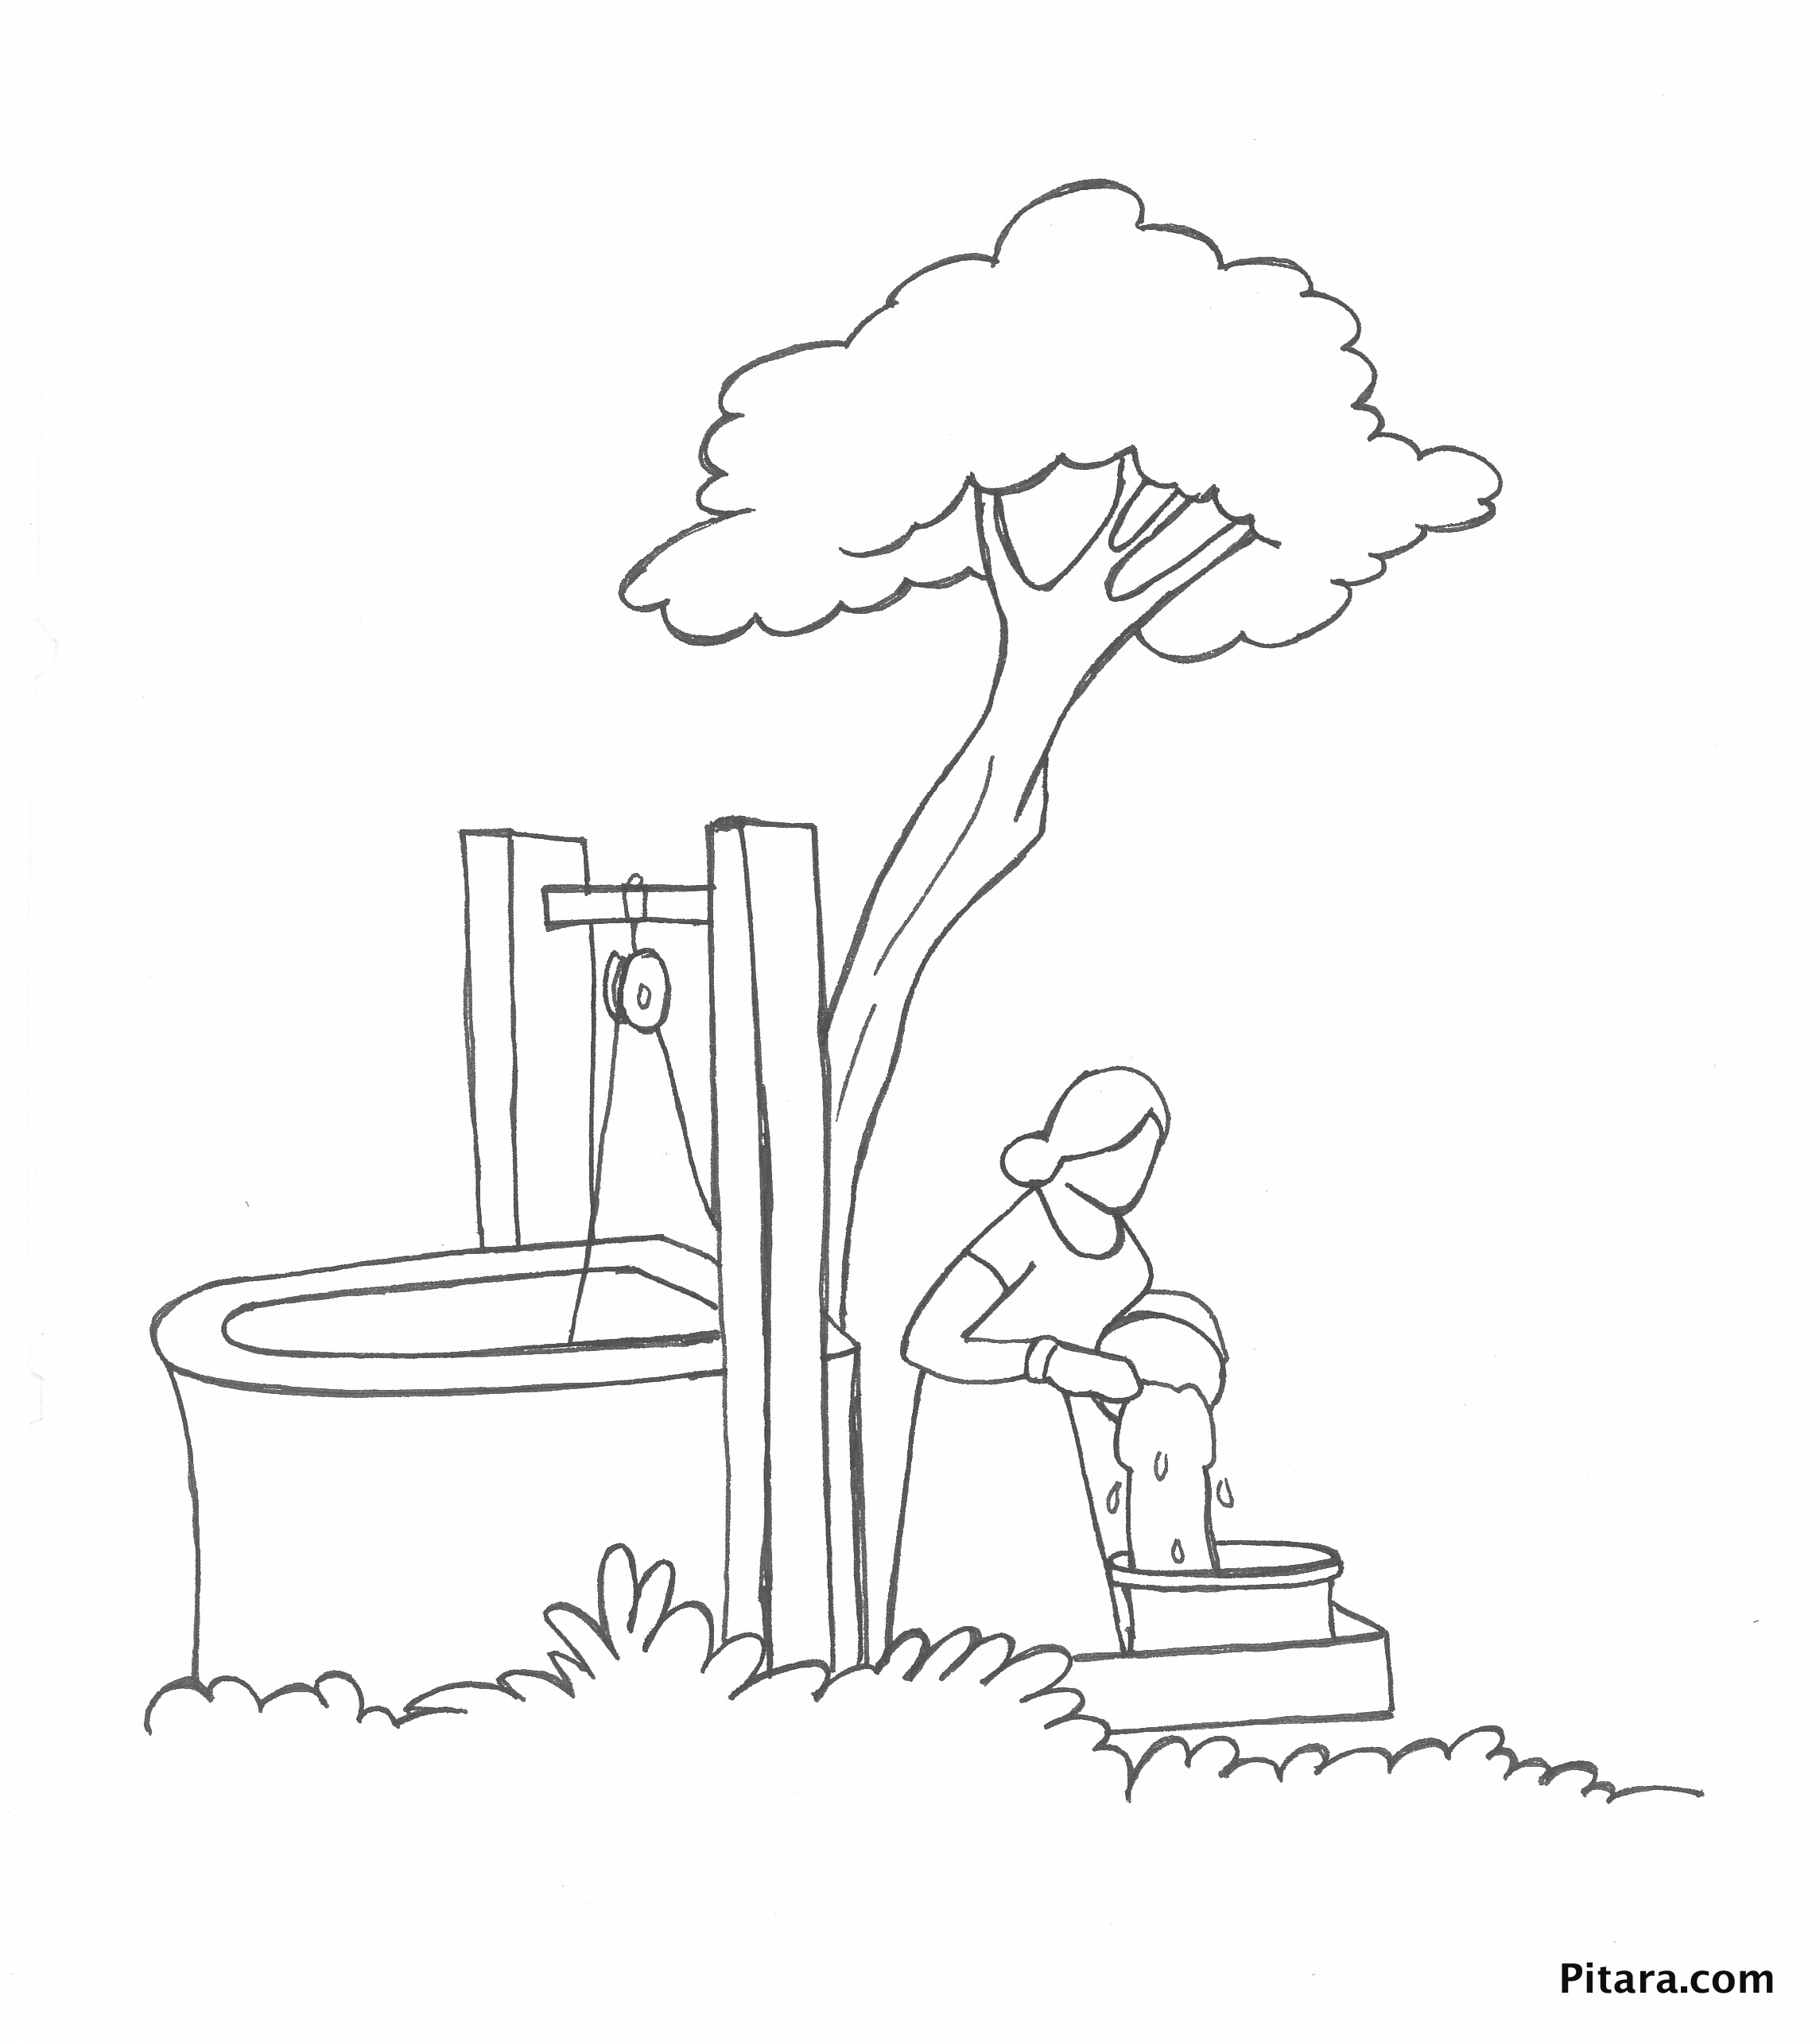 97 ideas Coloring Pages Water on gerardduchemann